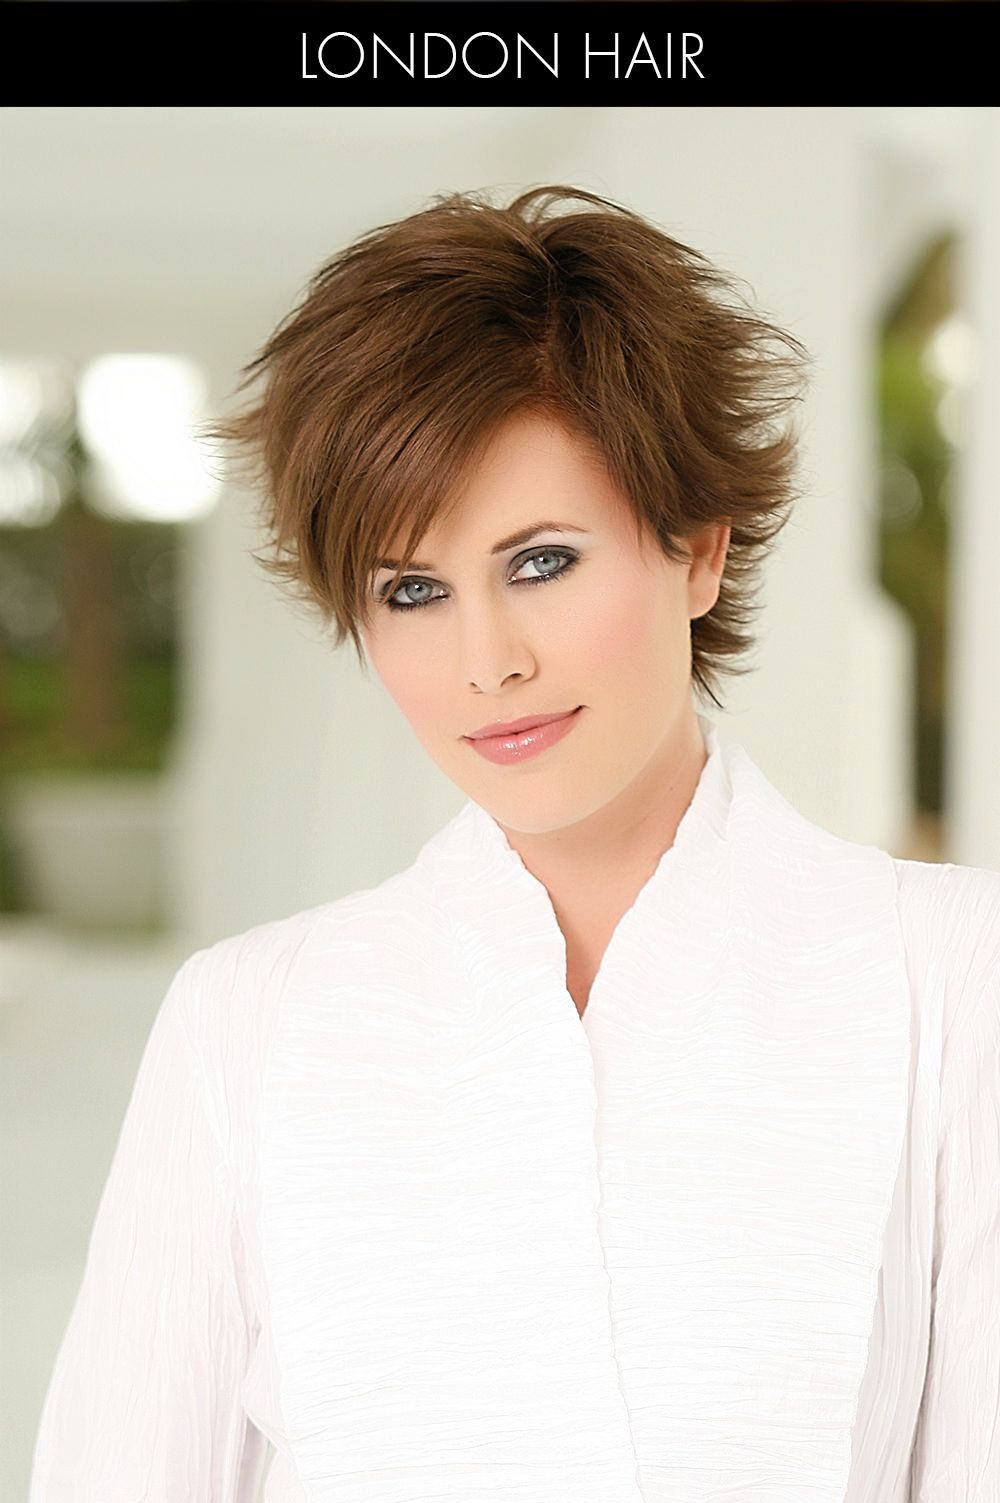 Short Flip Hairstyles : short, hairstyles, Short, Layered, Haircuts, Trending, Layers,, Styles,